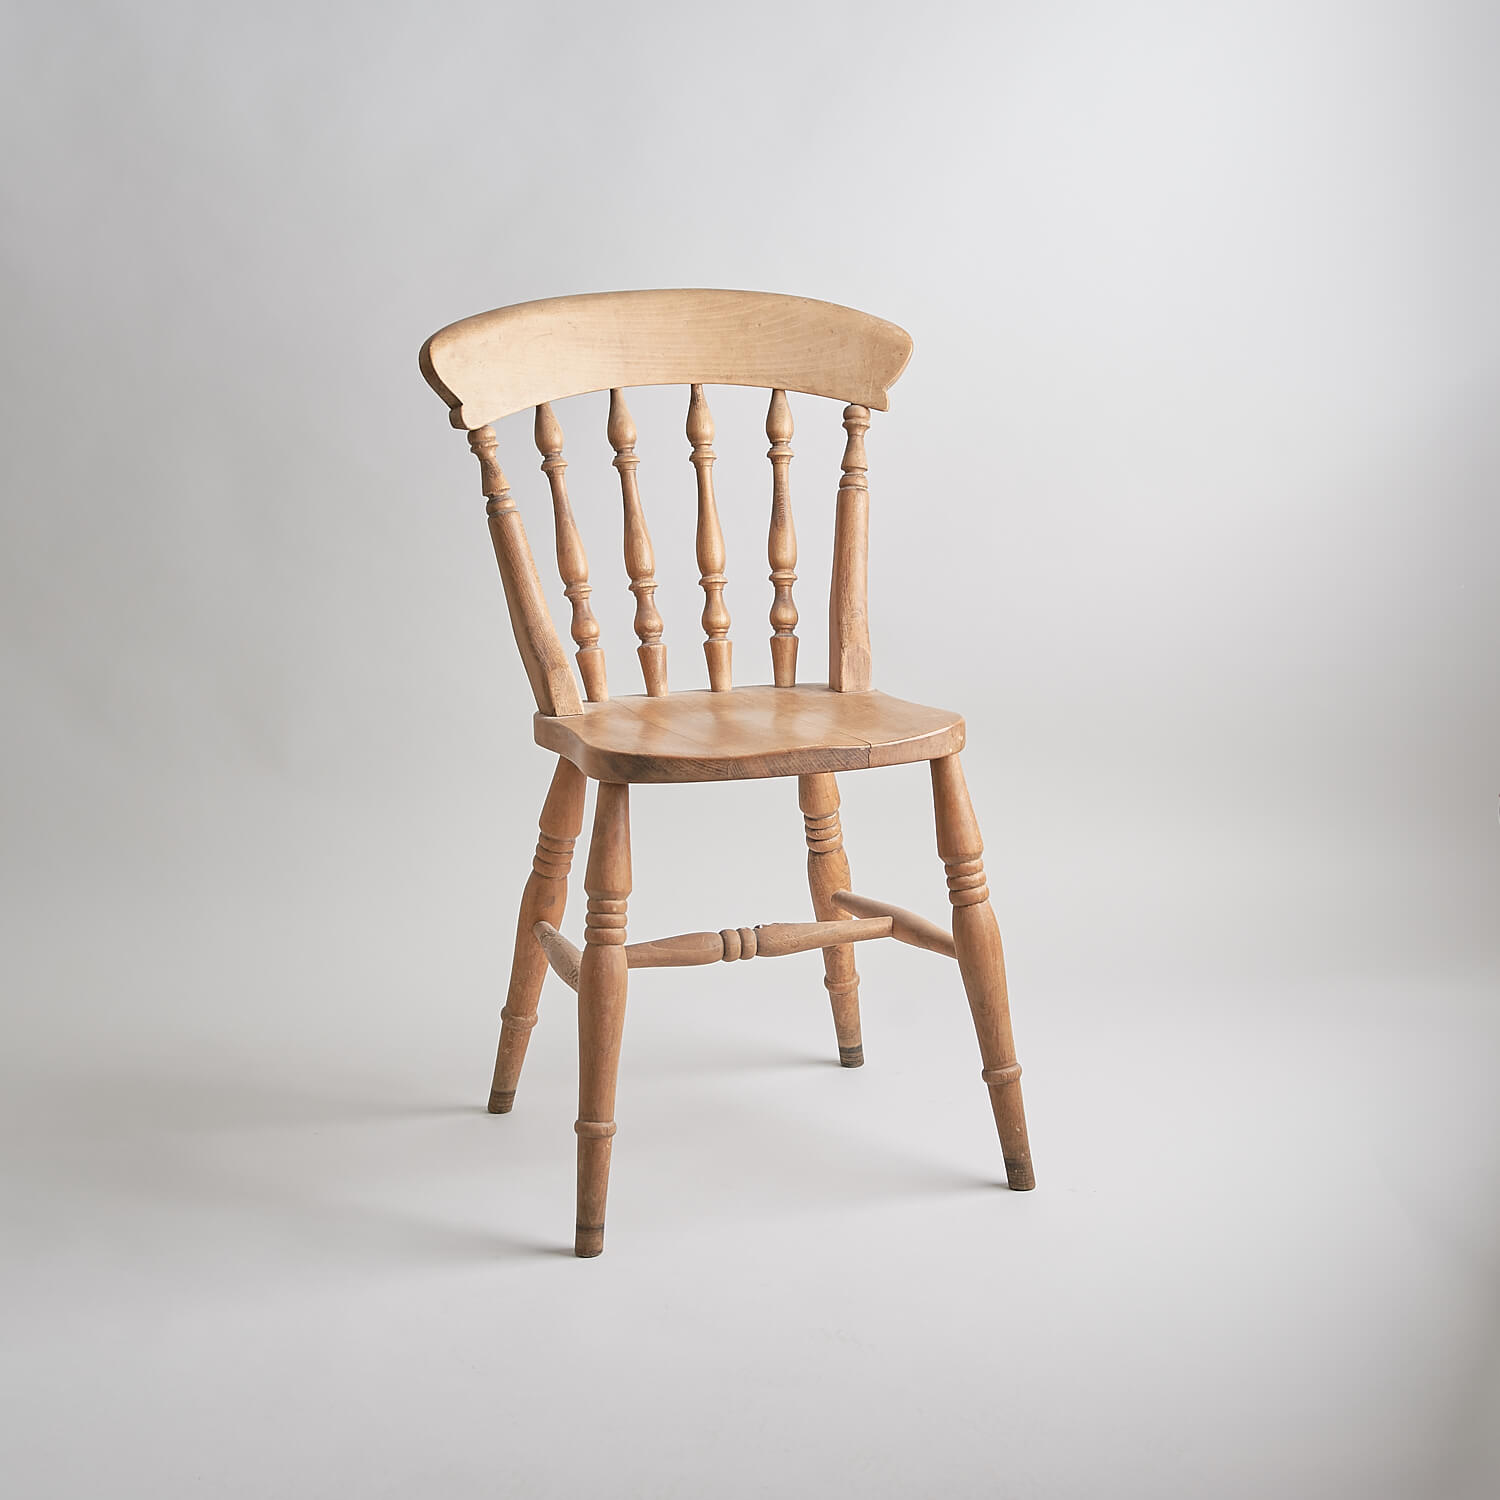 Farmhouse pine chair